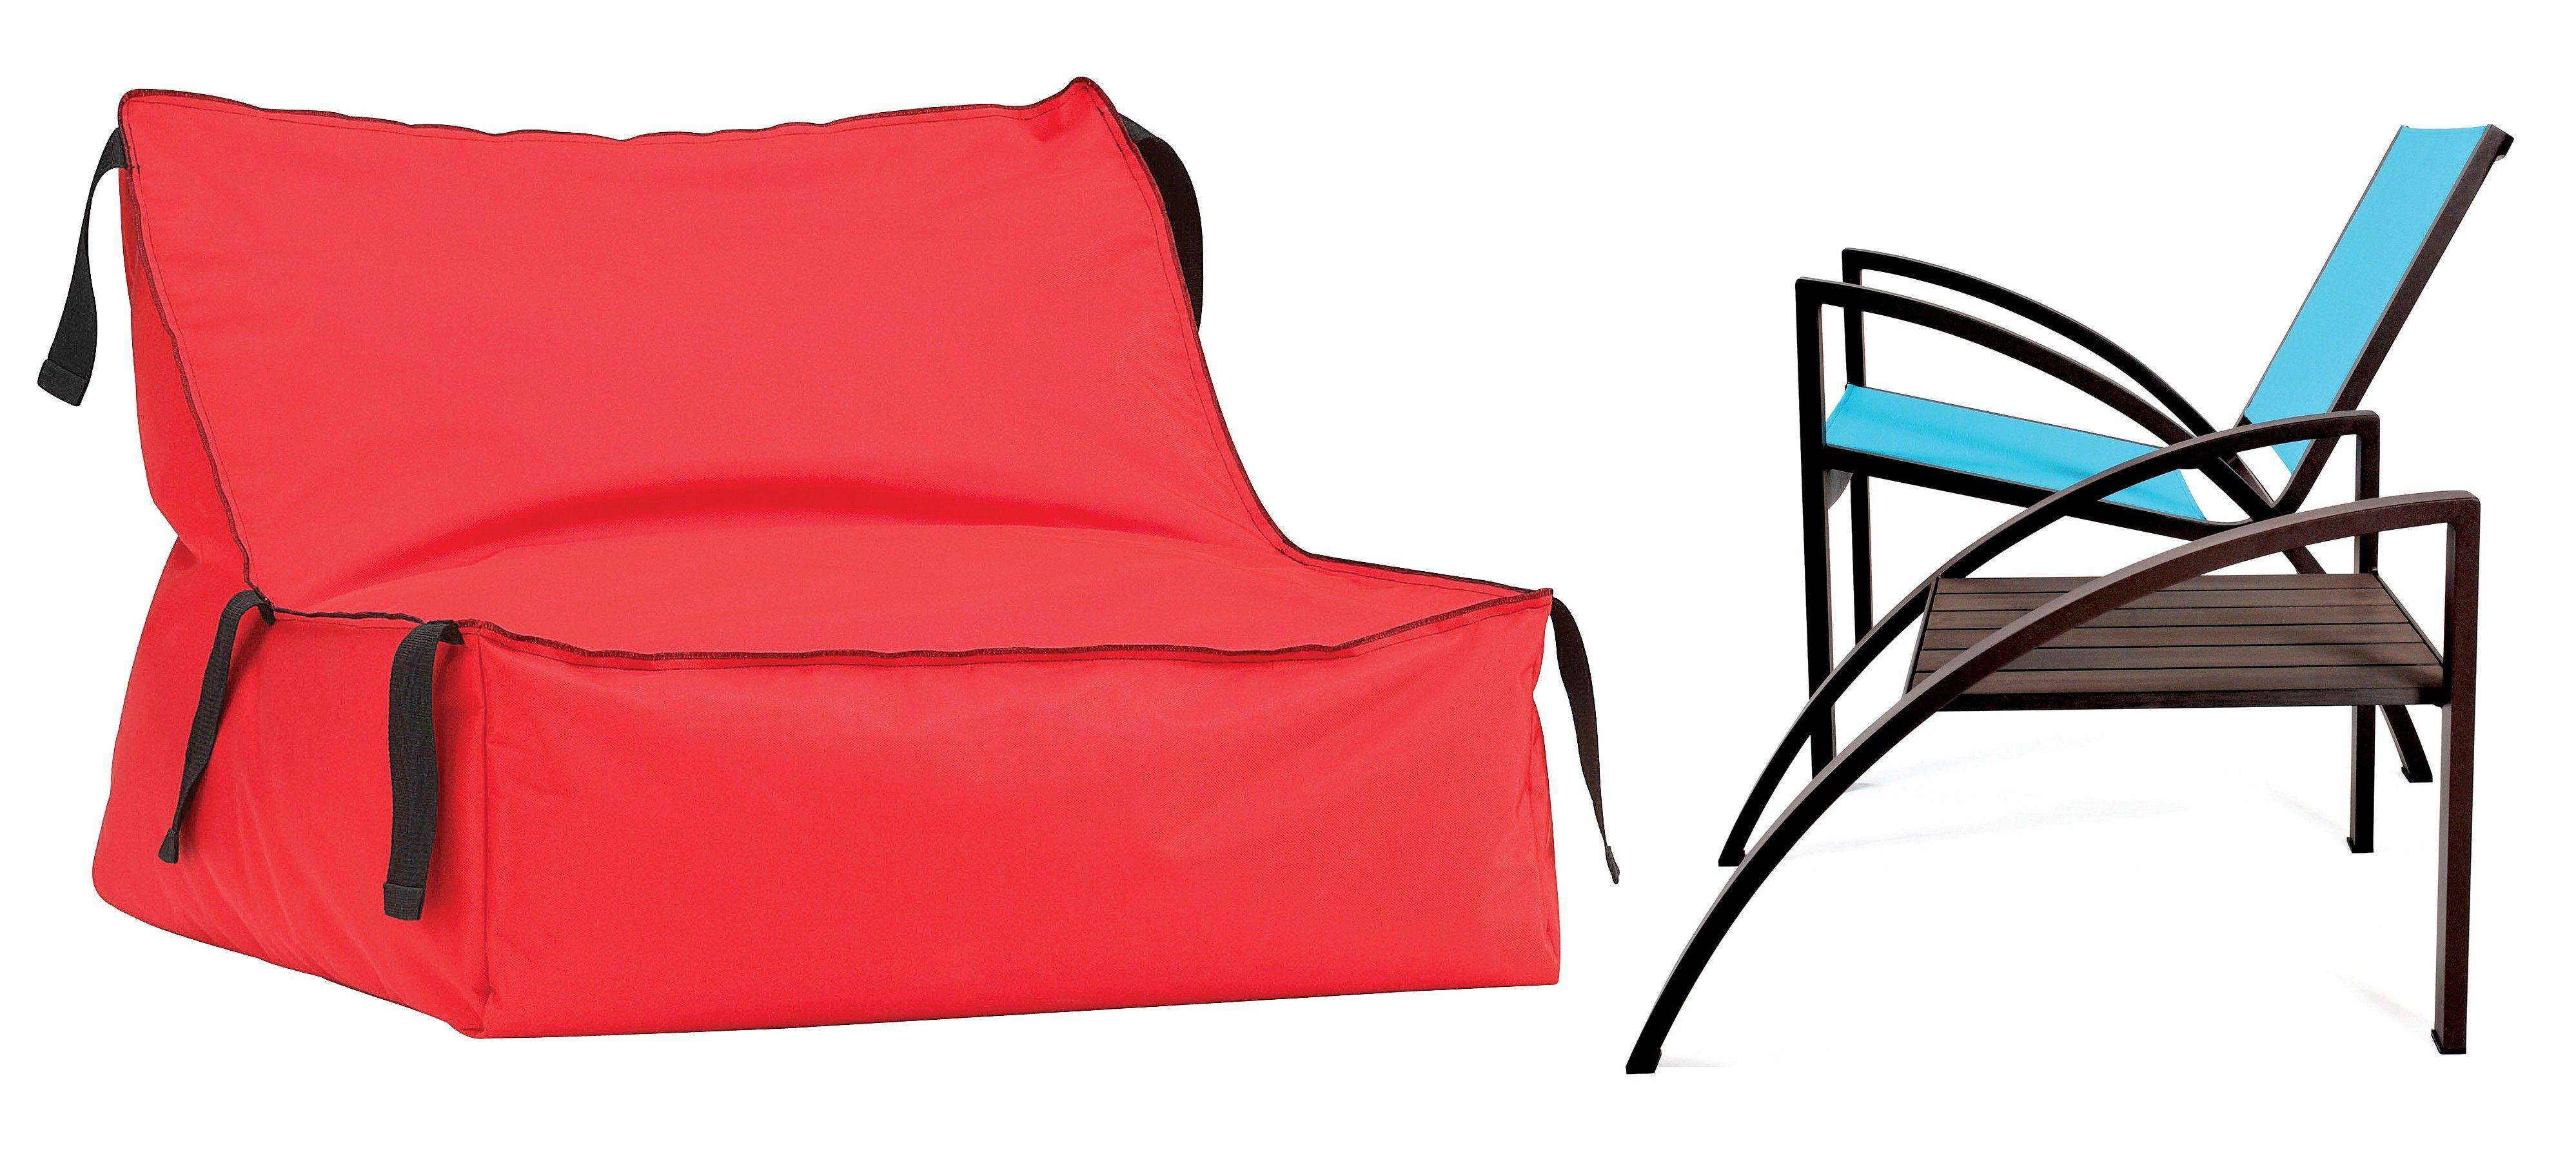 CB2u0027s Outdoor Take On The Beanbag Seat (left, $99) Comes In Waterproof  Polyester